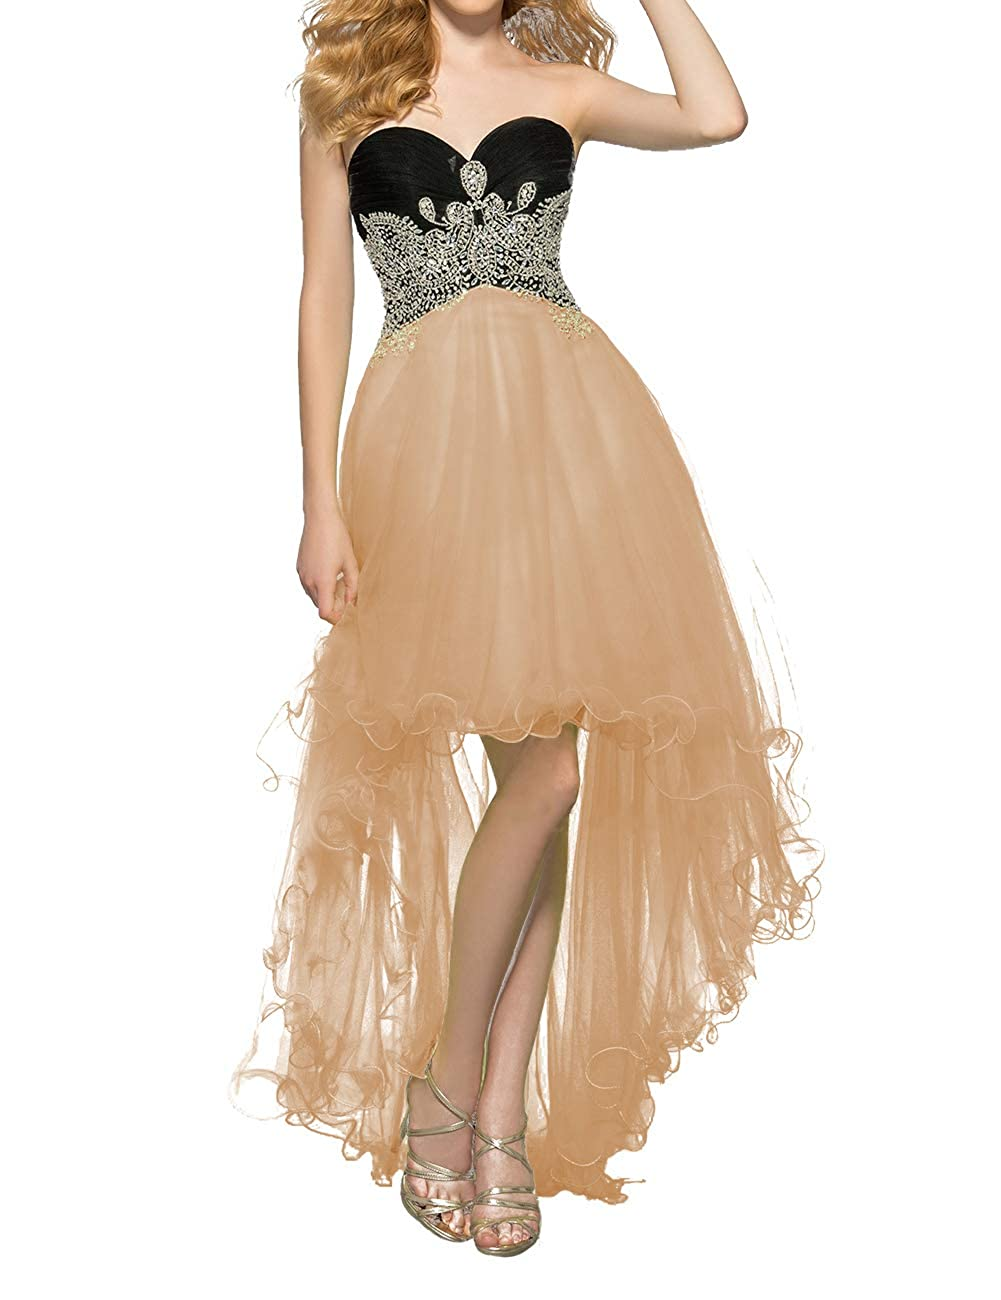 Champagne Uther Women's Tulle HiLow Beaded Prom Dresses Strapless Evening Homecoming Cocktail Gowns